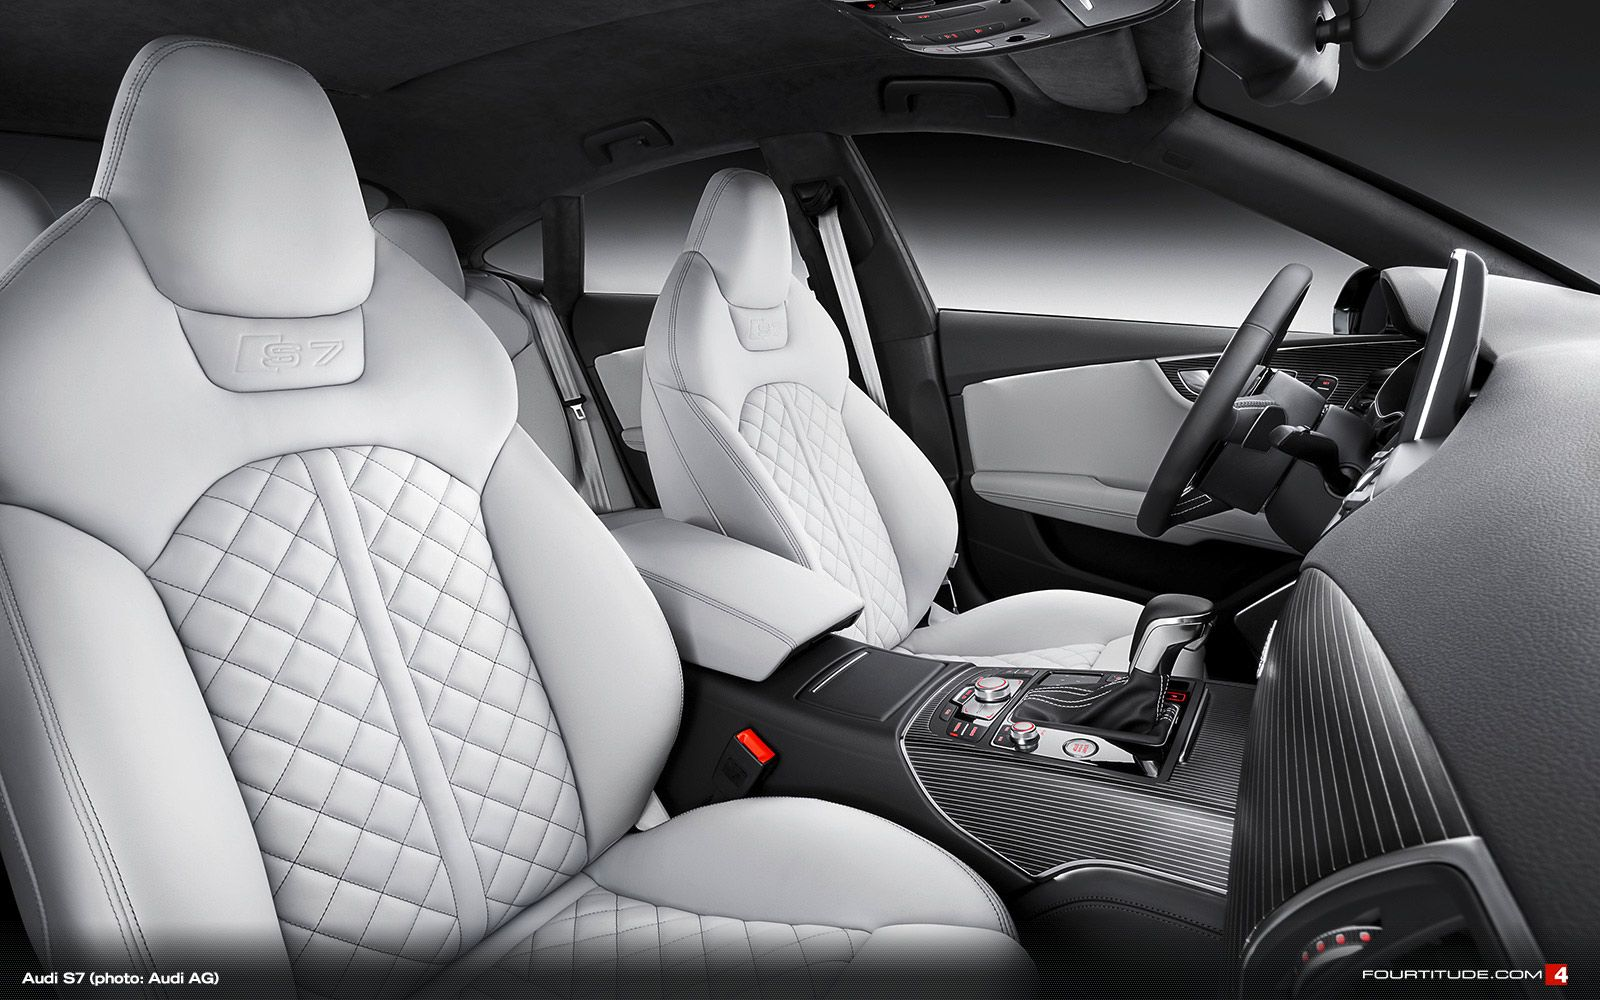 Audi S7 Quilted Leather Custom Seats Audi A7 Audi A7 Interior